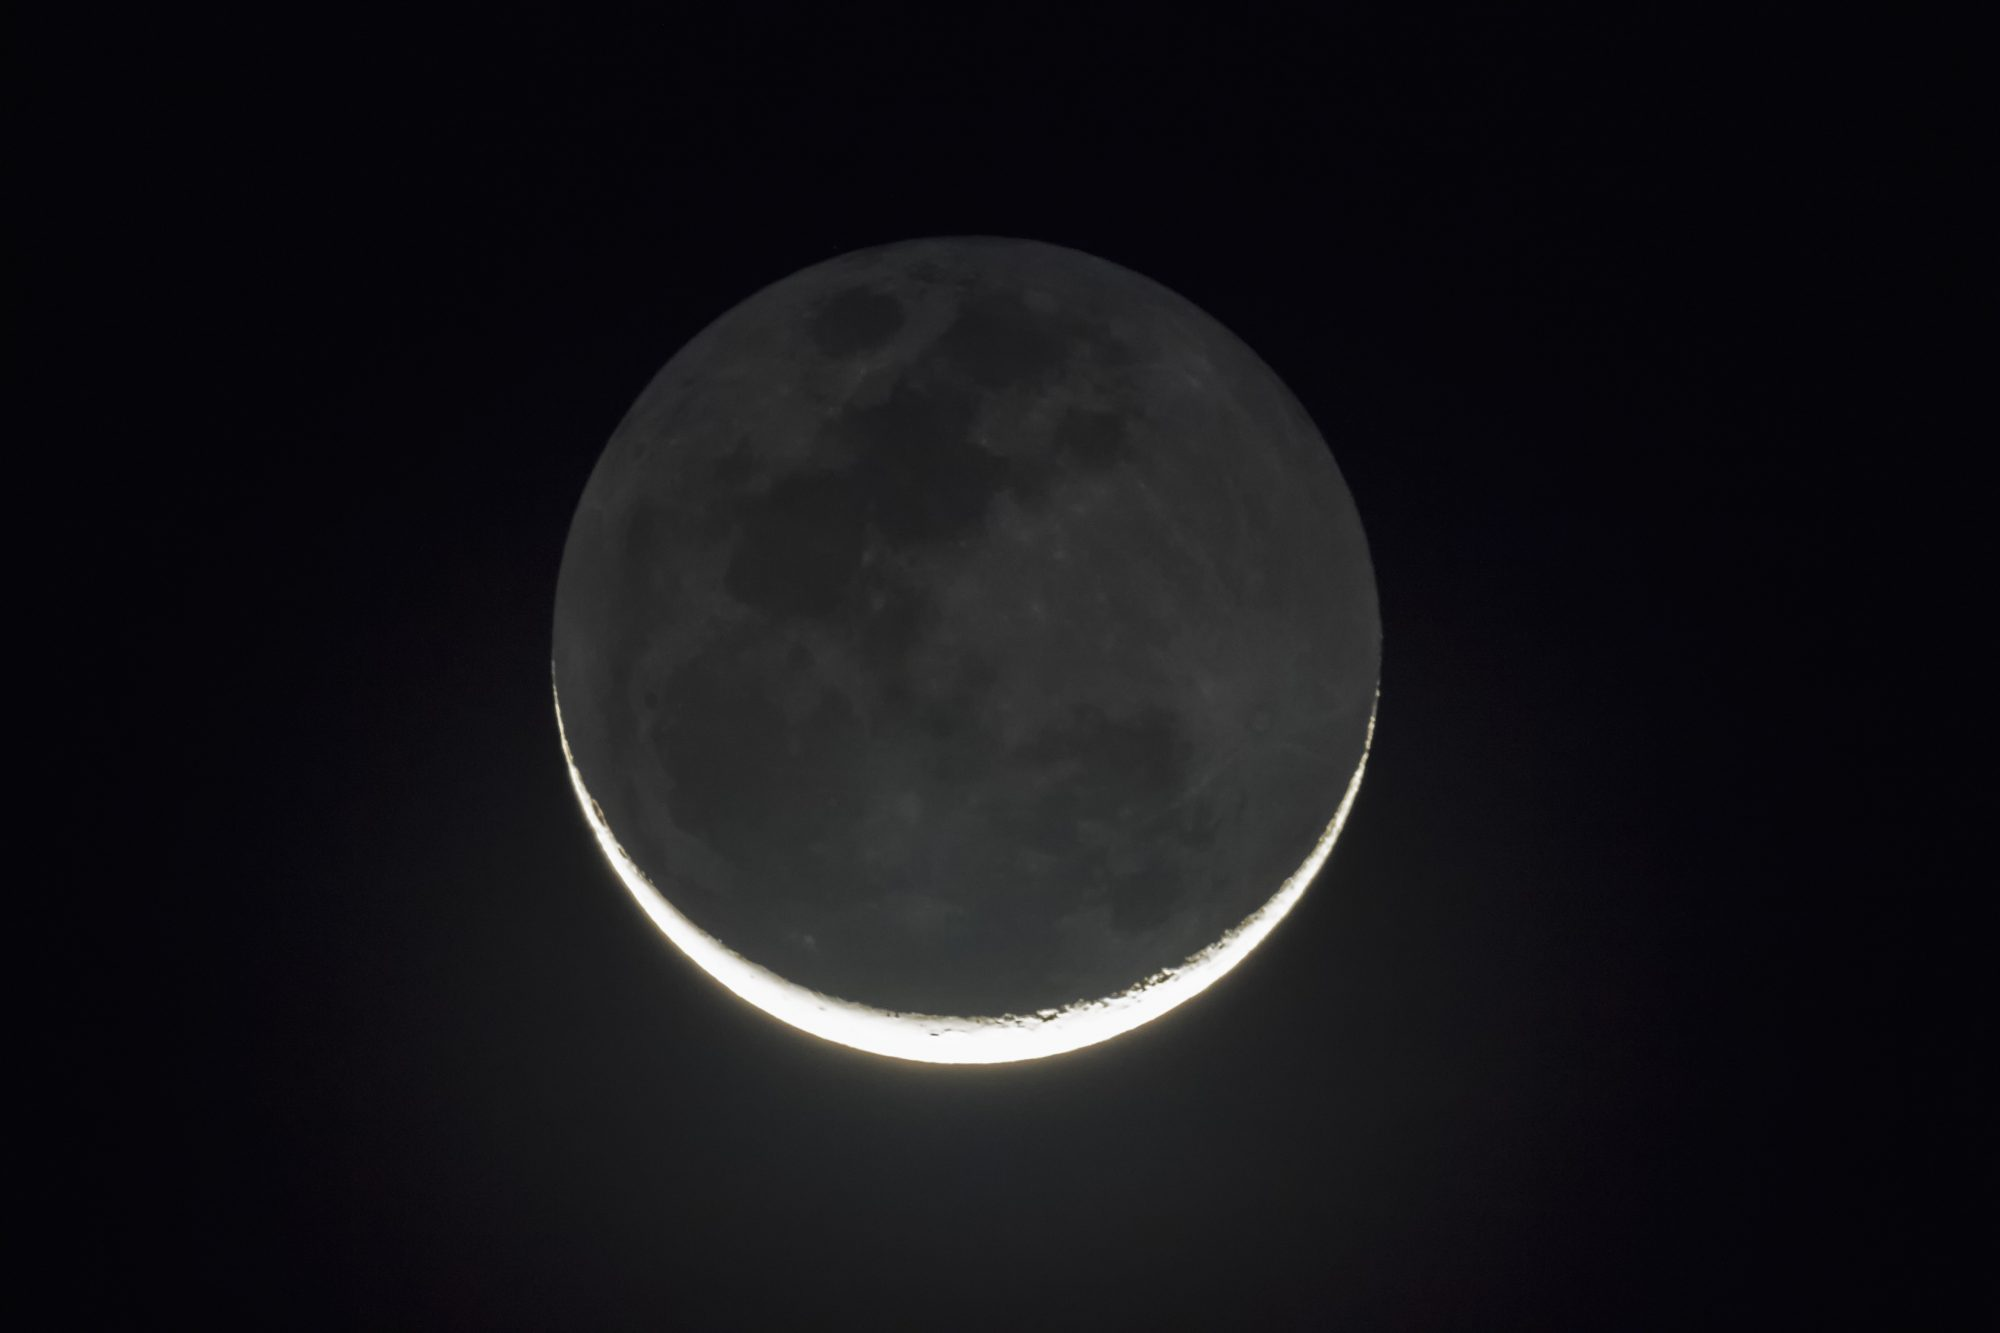 Image of a New Moon